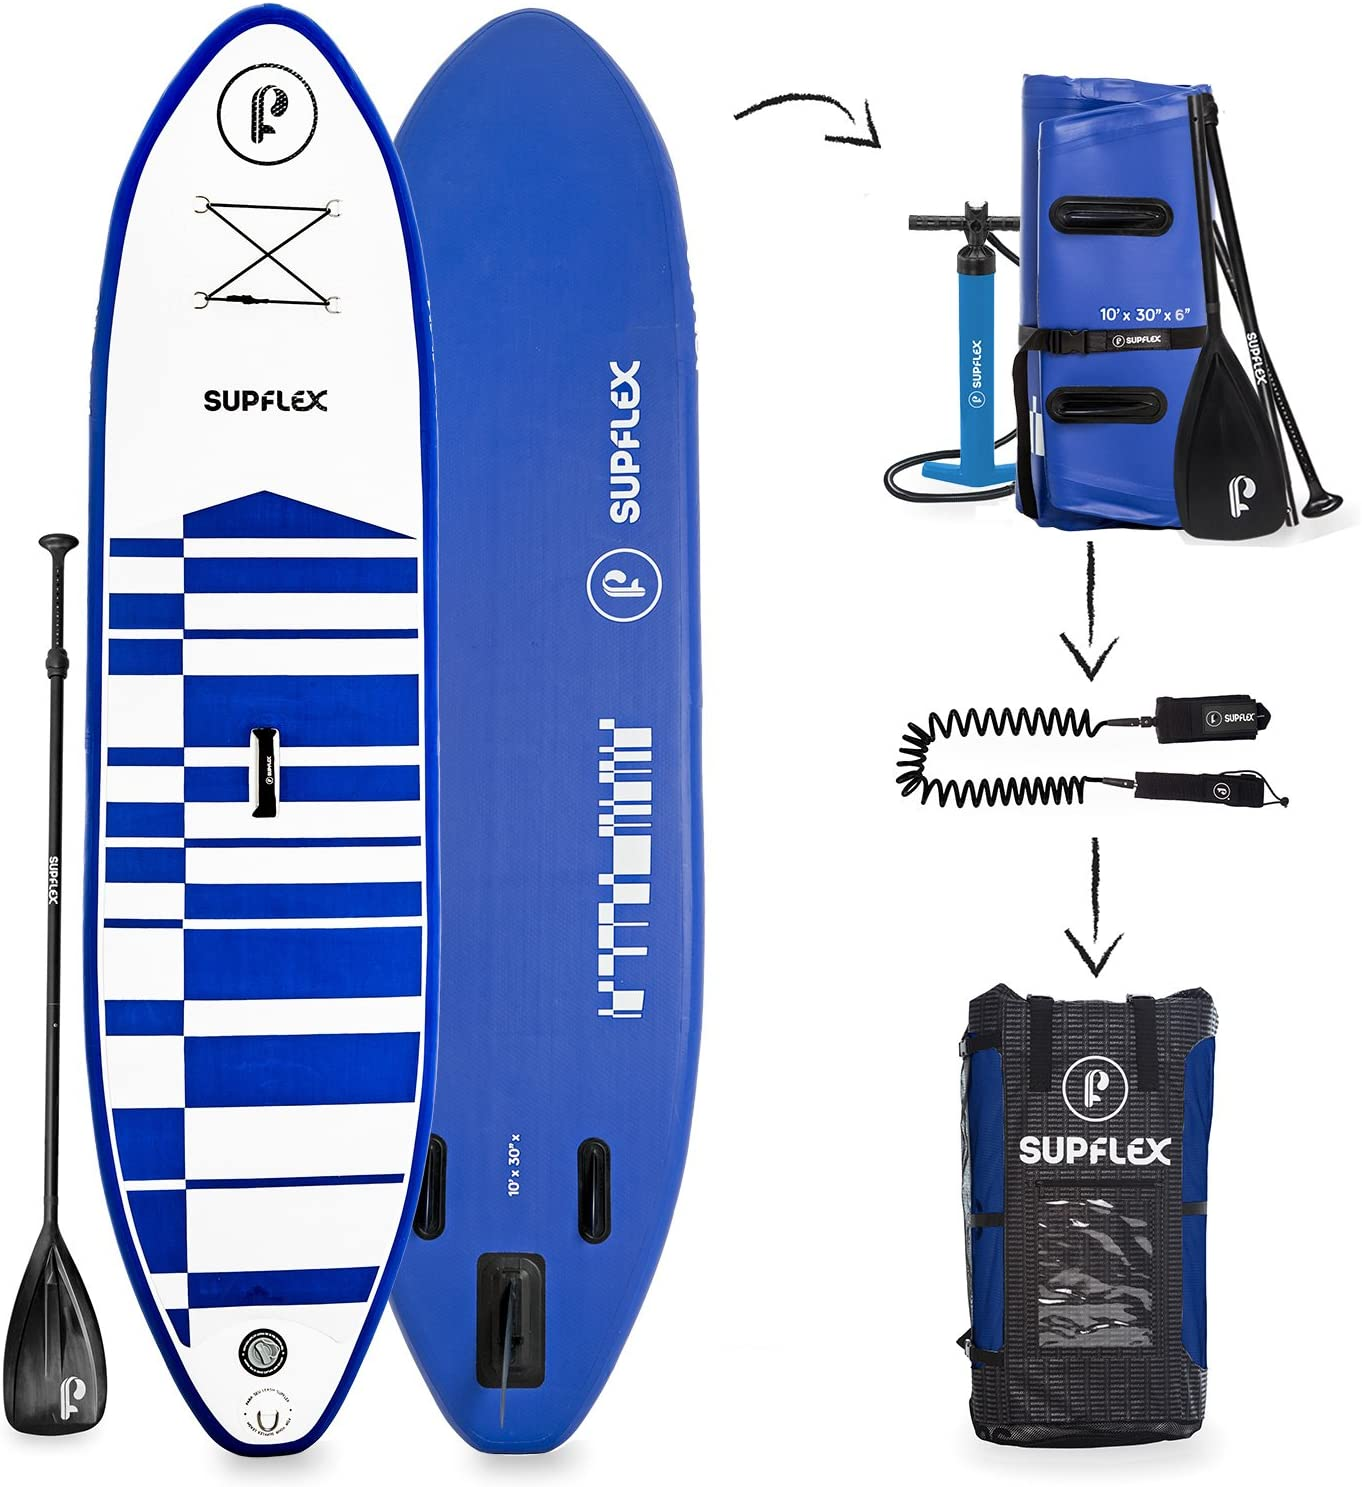 Supflex 10 Inflatable Stand Up Paddleboard 6 Thick 2-YR Warranty, Includes Backpack, Paddle, HP Pump Free Leash